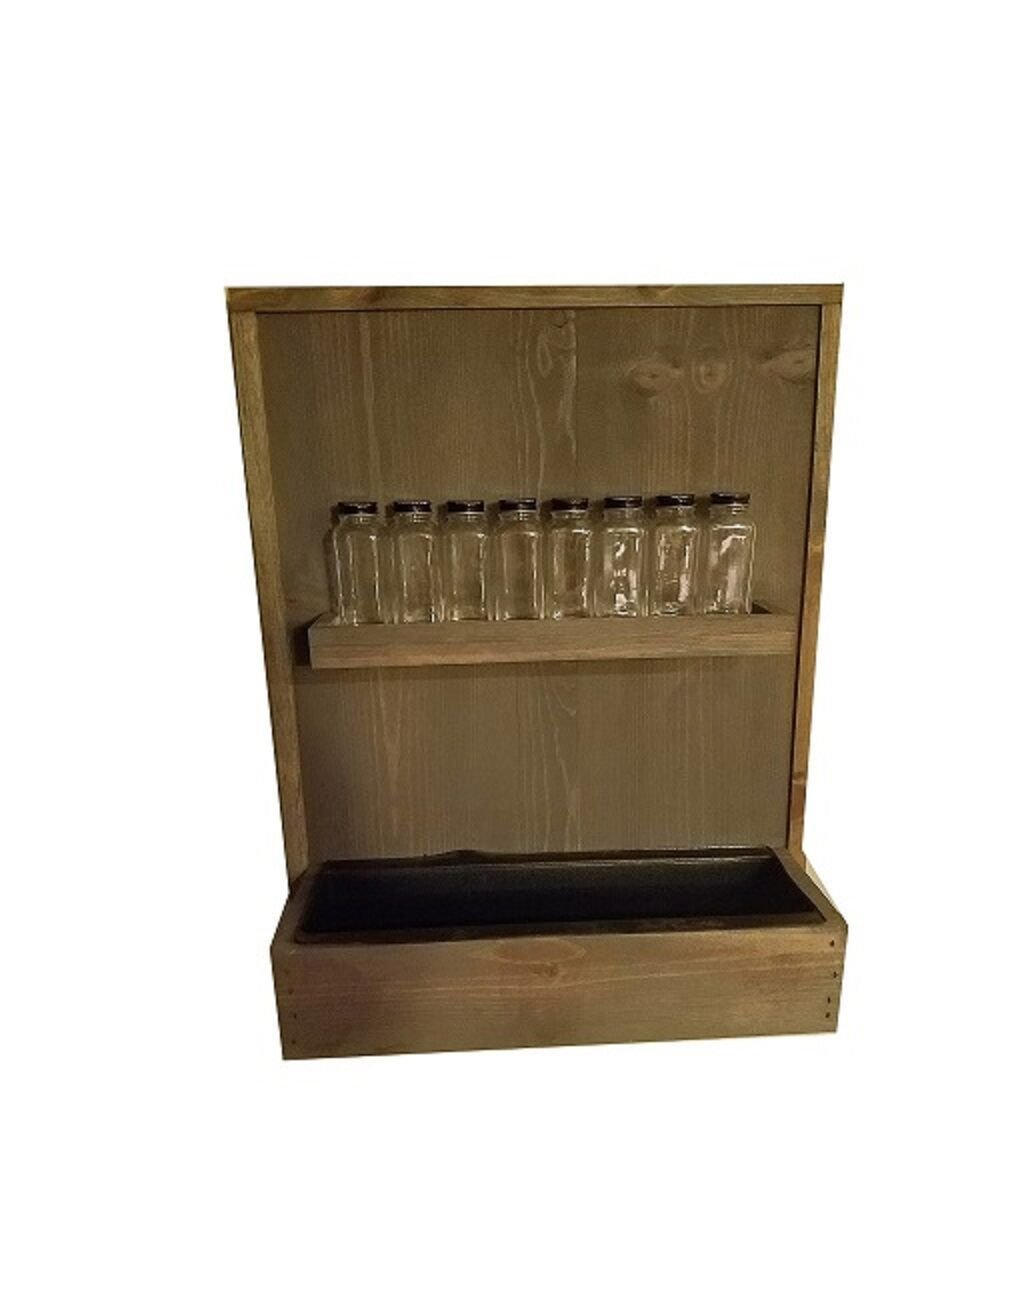 Shop Living Walls SLW-WM19SR-RB Wall Plant Holder Spice Rack, Reclaimed Brown by Shop Living Walls